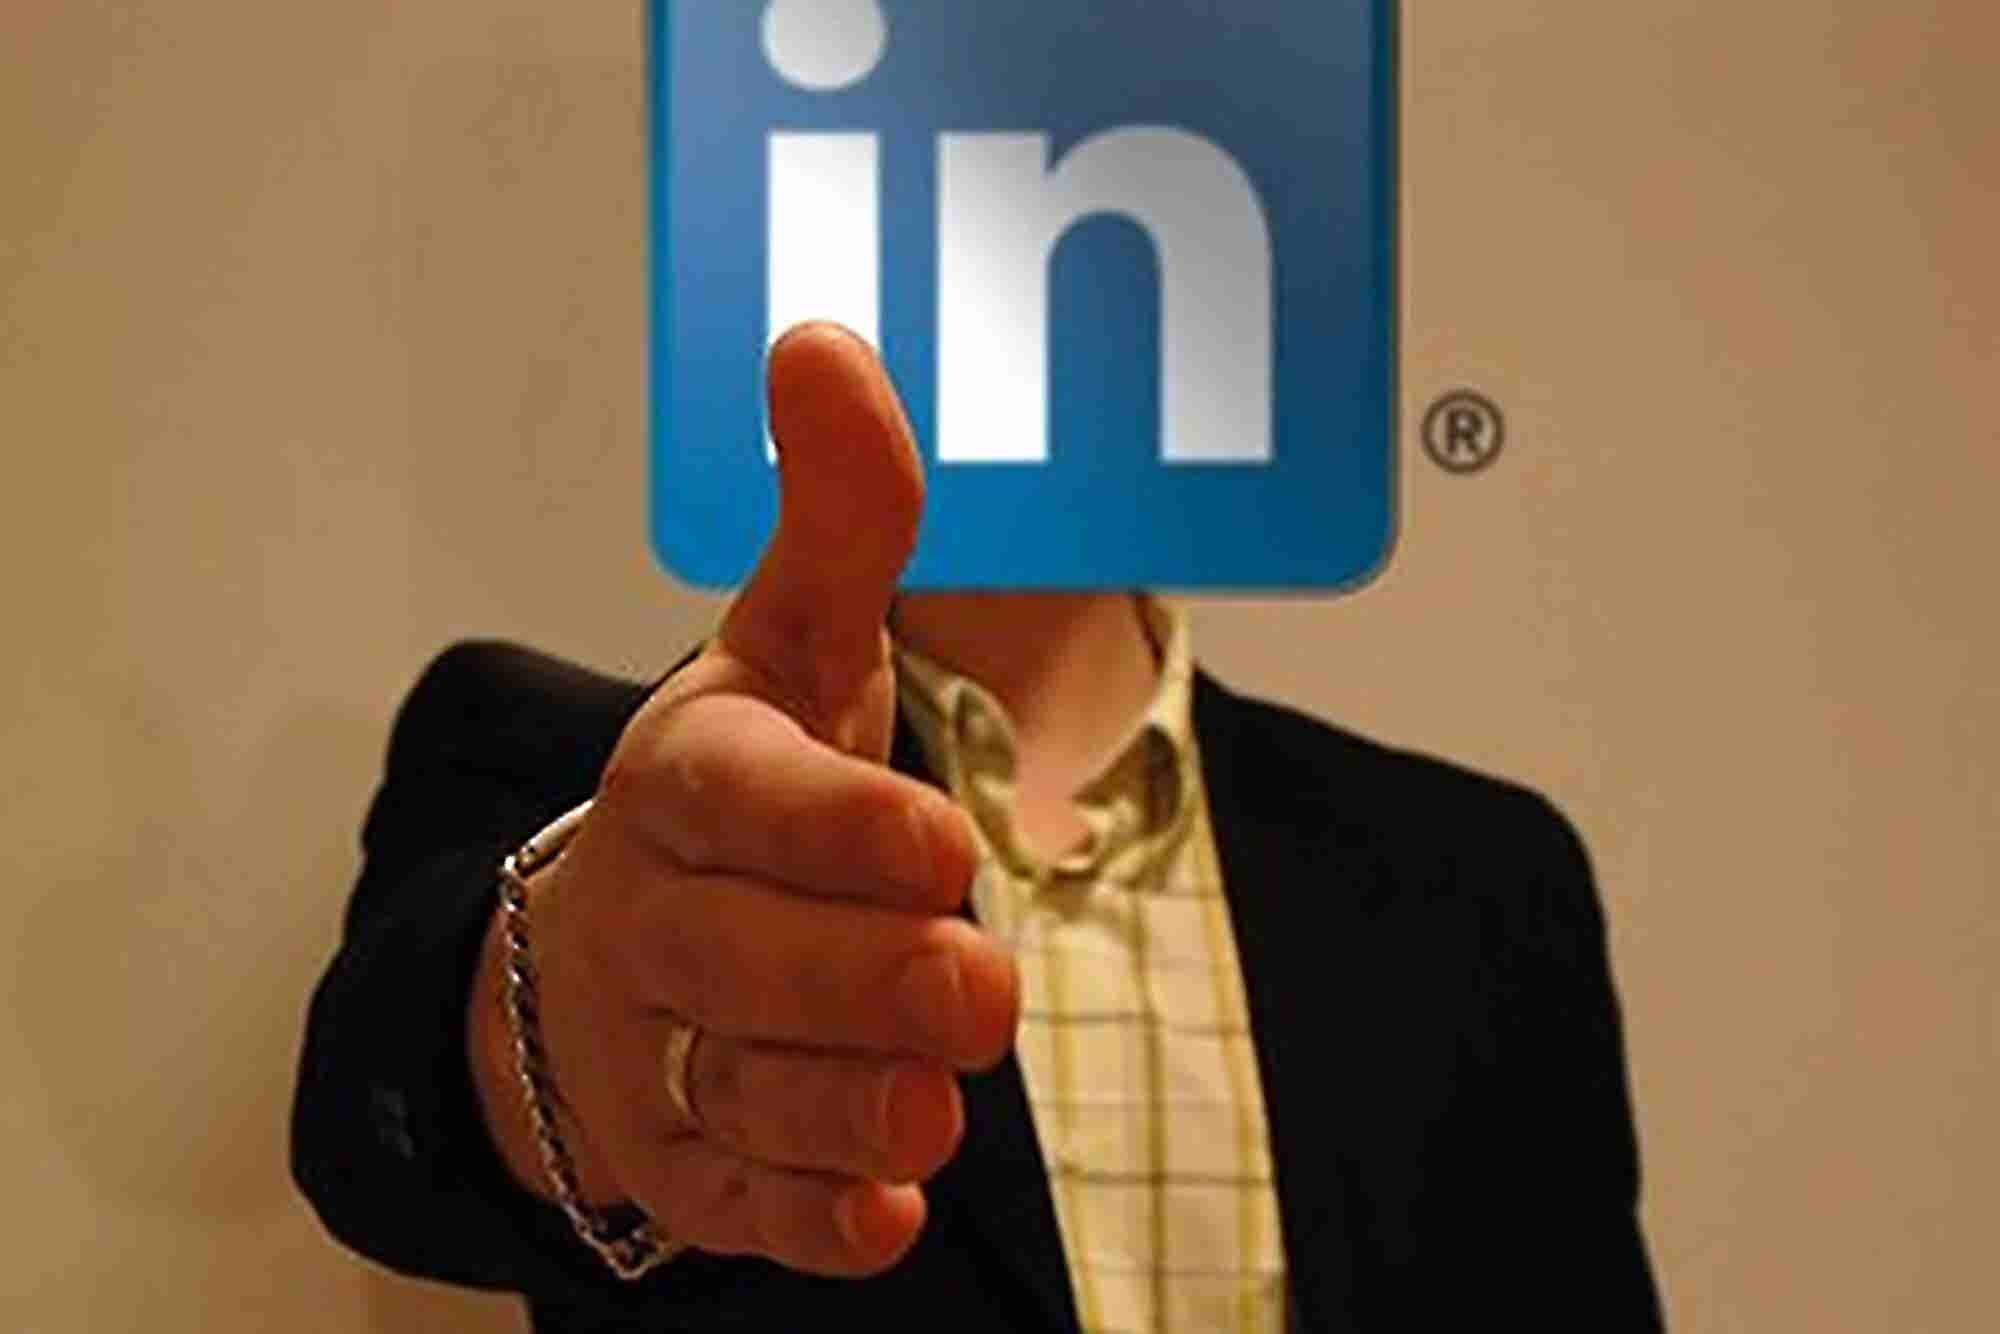 3 Ways You Might Be Screwing Up Your LinkedIn Profile and How to Avoid...